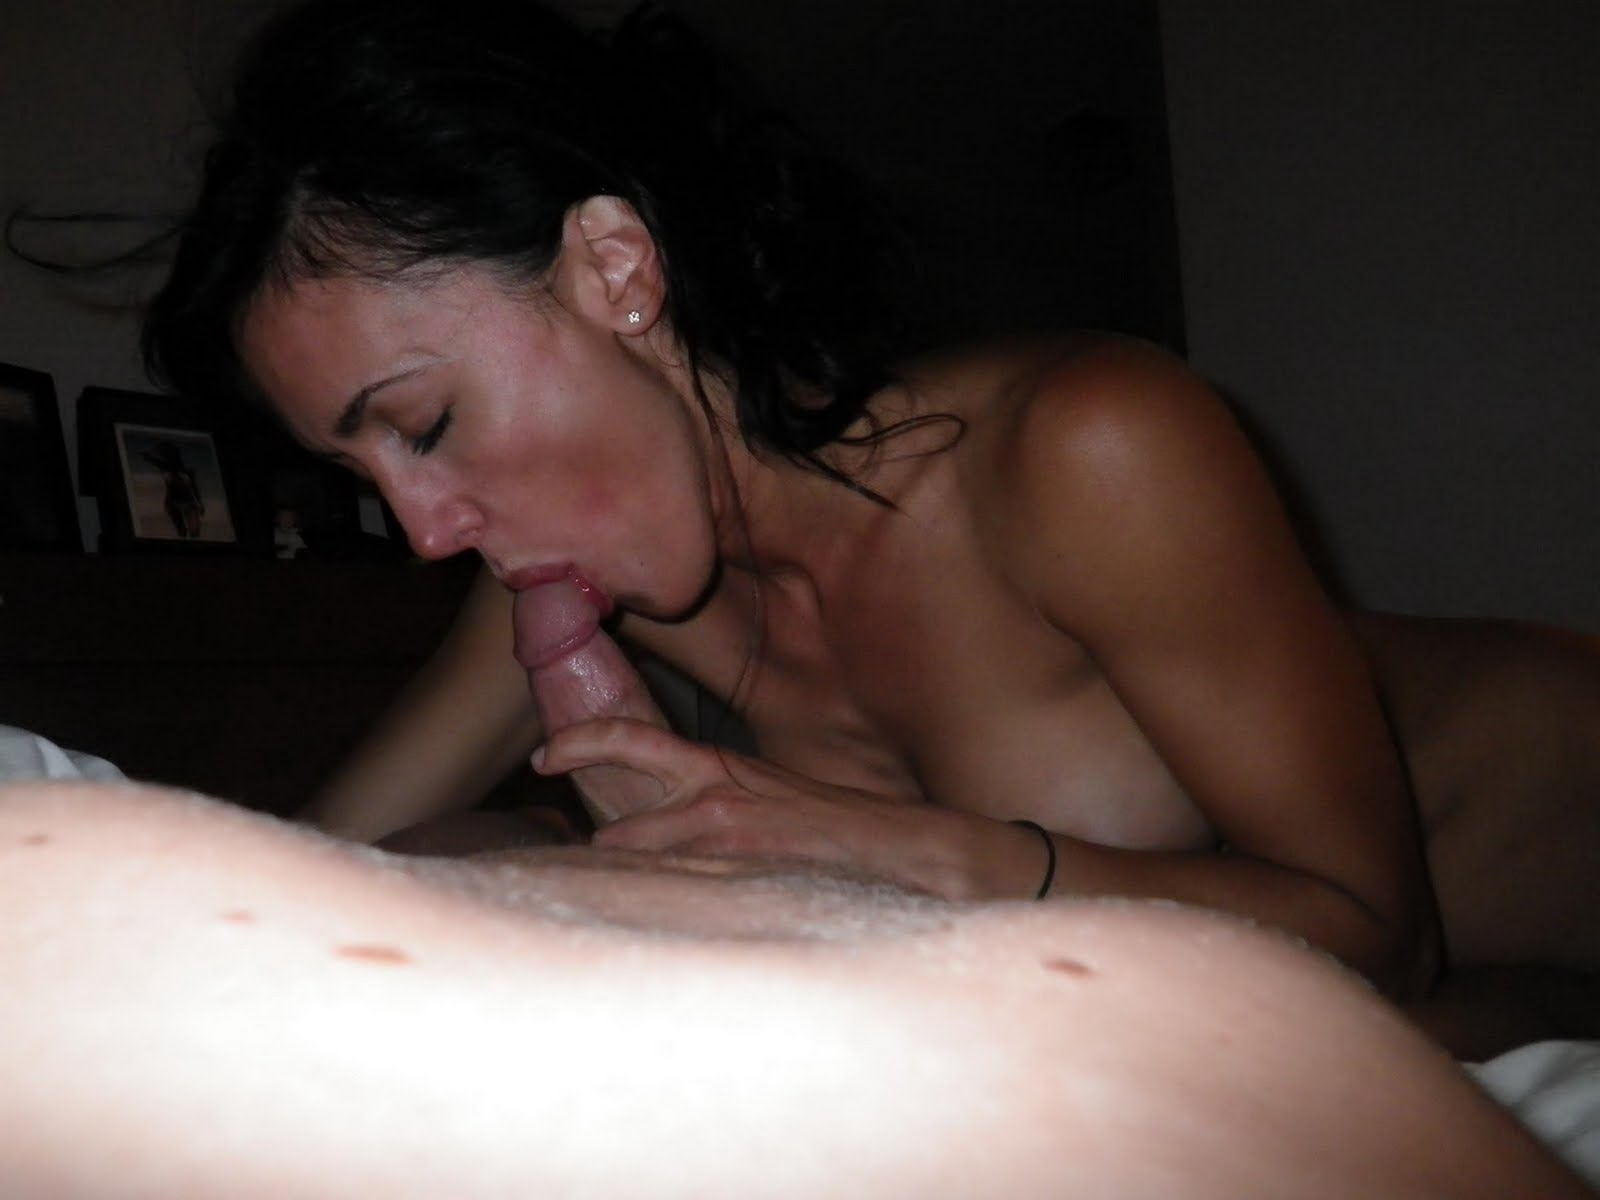 Super hot wife fucking